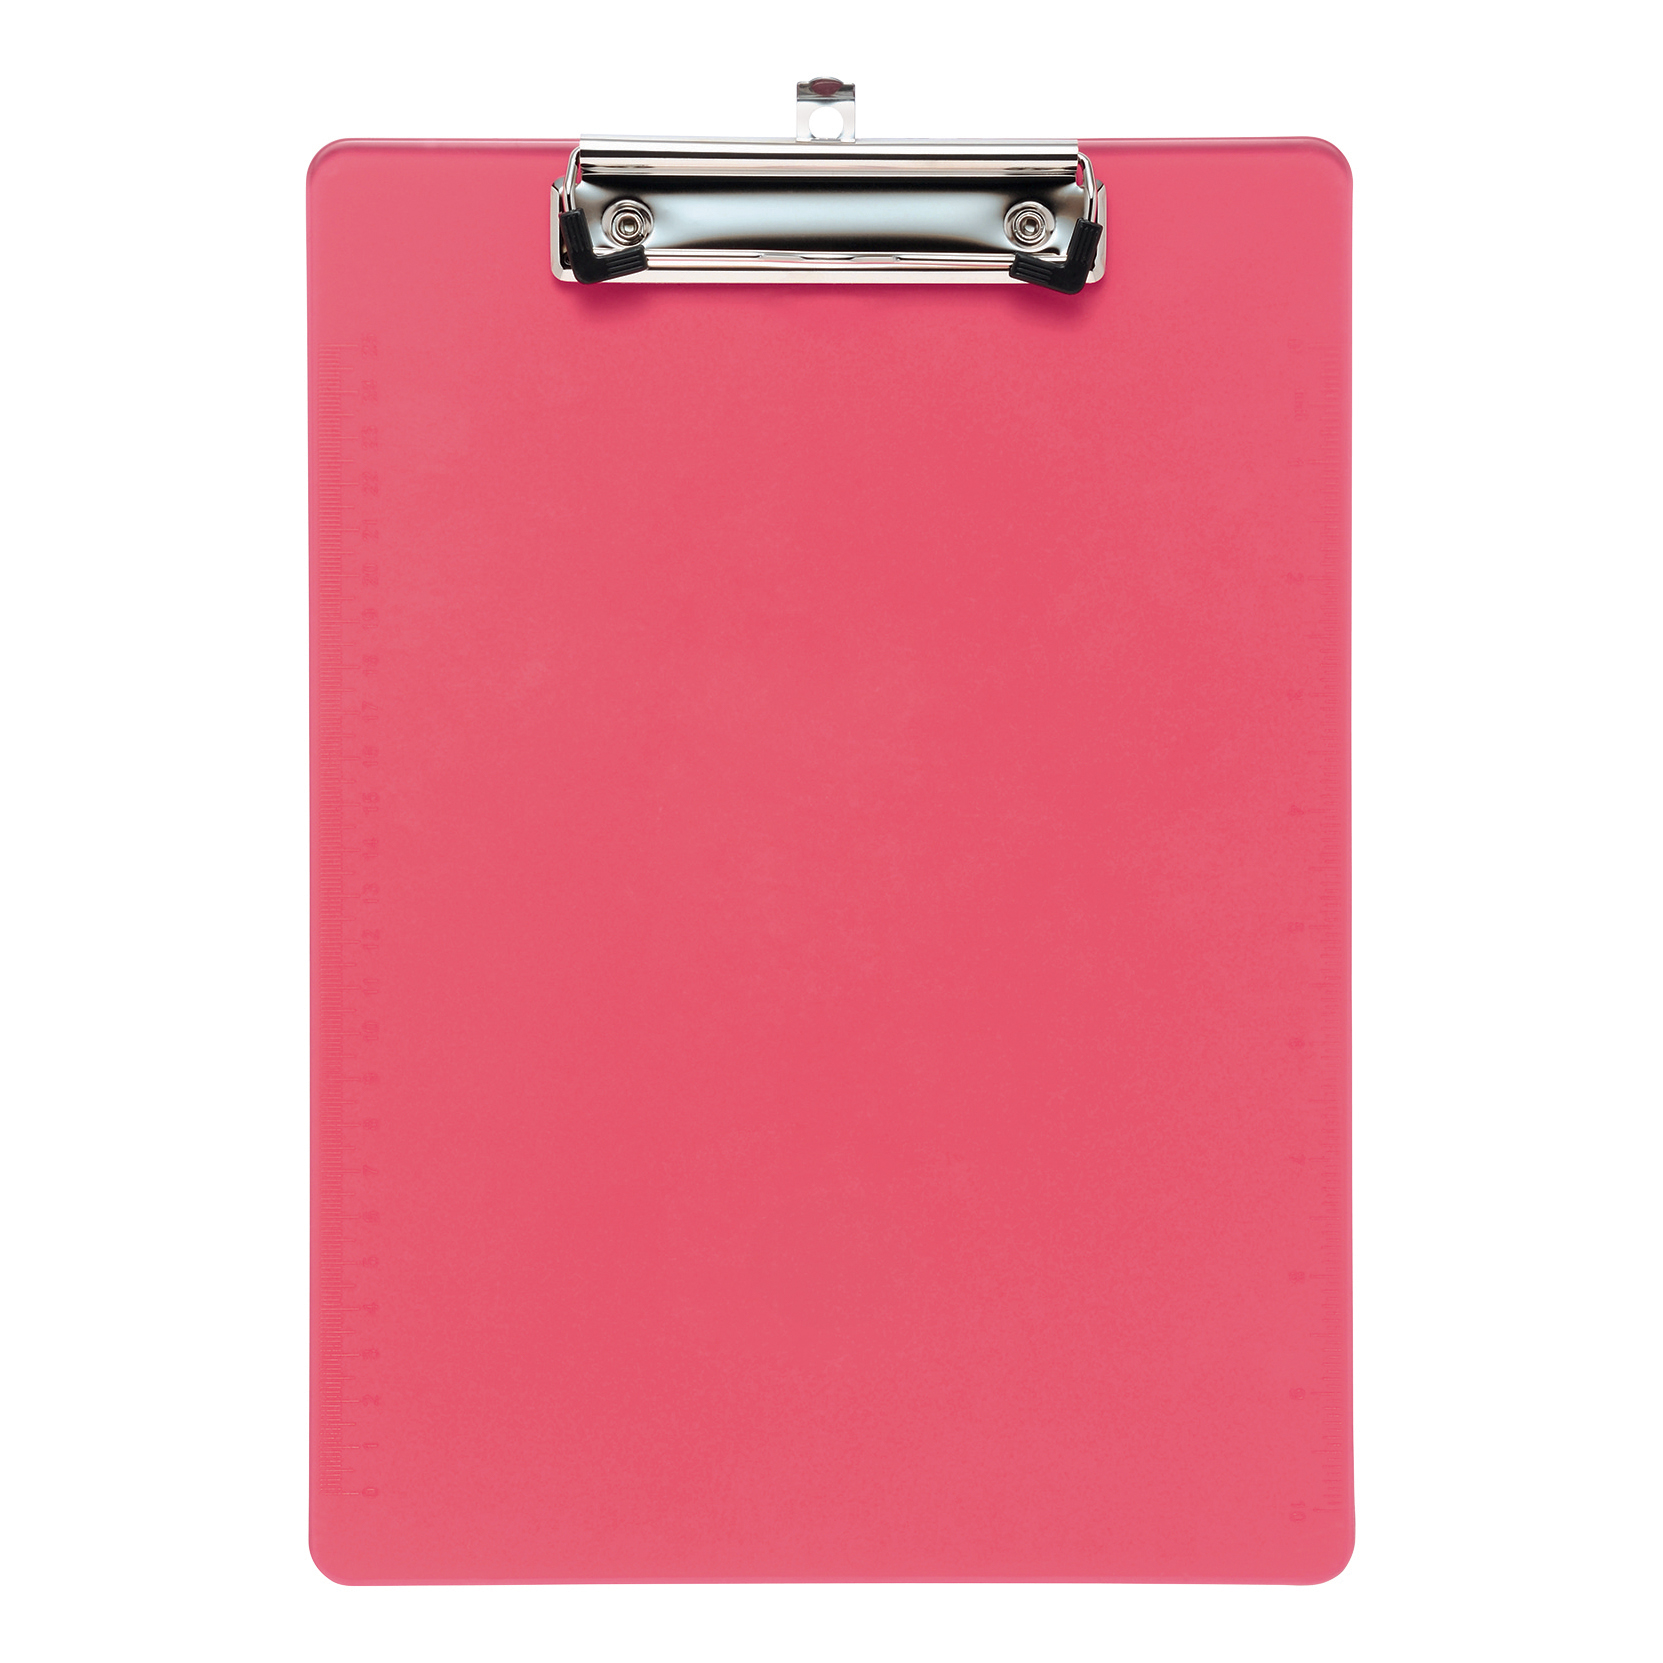 5 Star Office Clipboard Plastic Durable with Rounded Corners A4 Pink